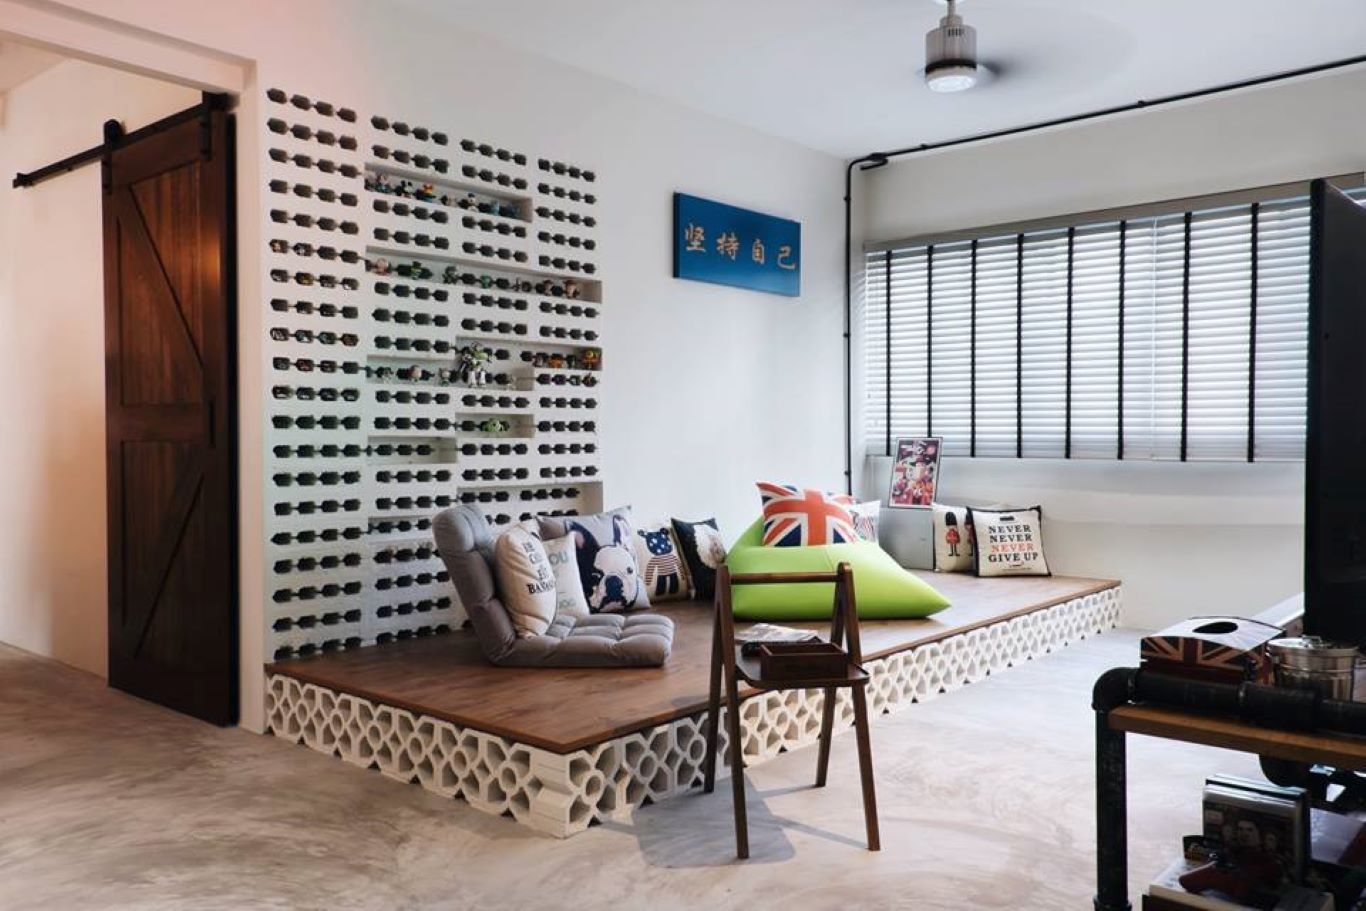 Modern Retro living room with feature wall portraying 80s HDB void deck ventilation wall